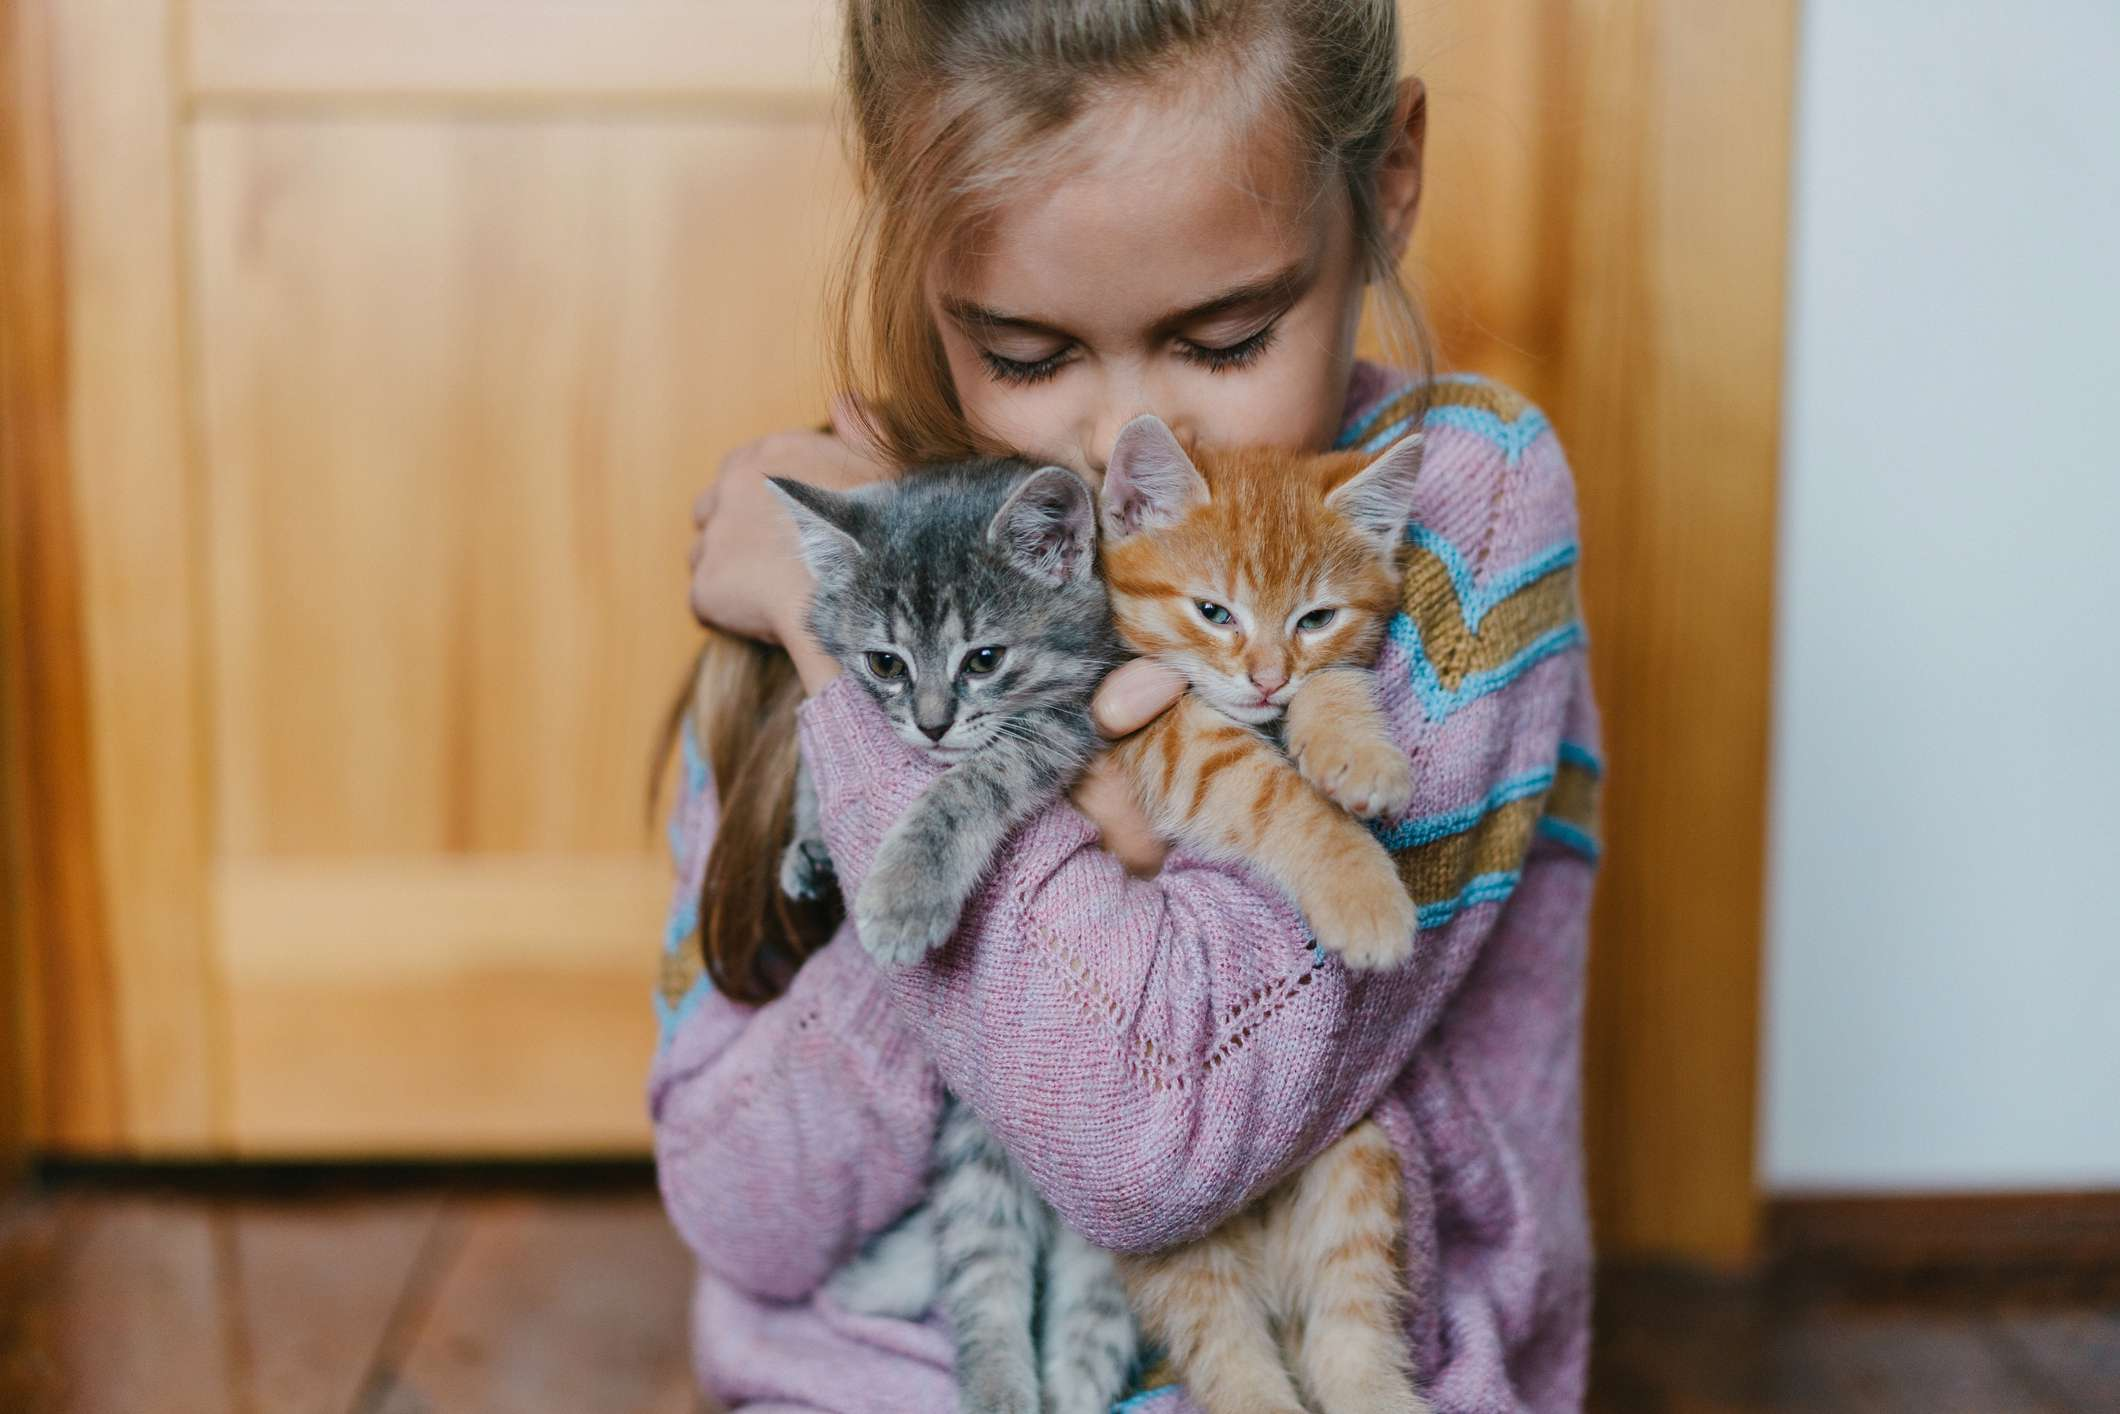 Little girl bonding with kitten